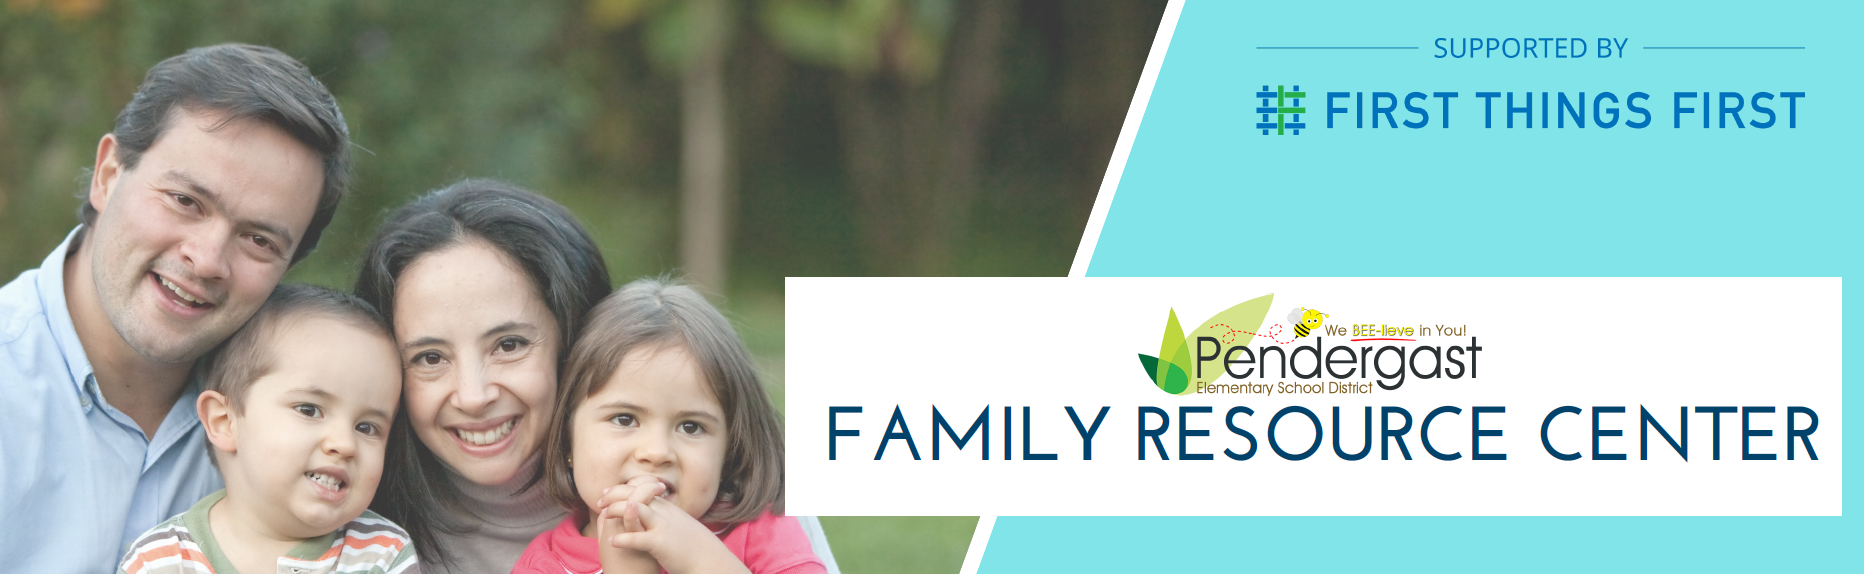 Pendergast Family Resource Center